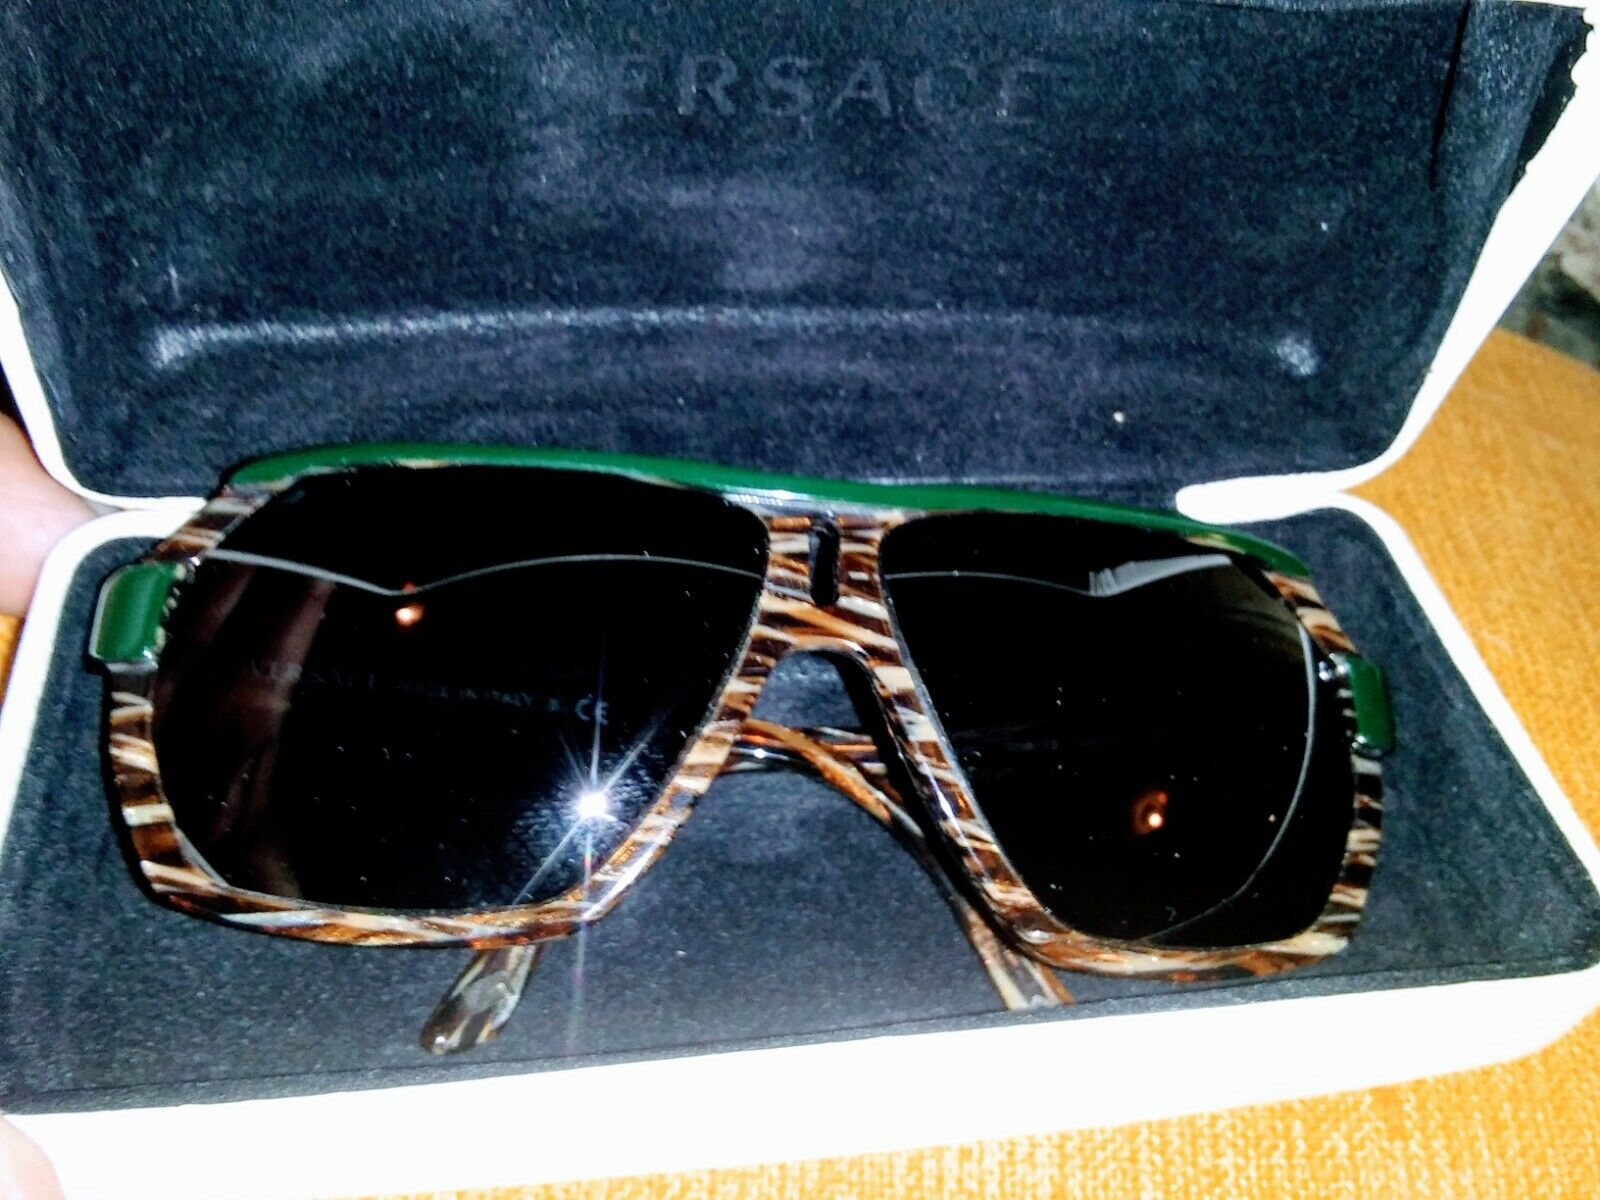 VERSACE VINTAGE VERSACE SUNGLASSES ORIGINAL WITH CASE LEOPARD AND GREEN 909 - $295.00